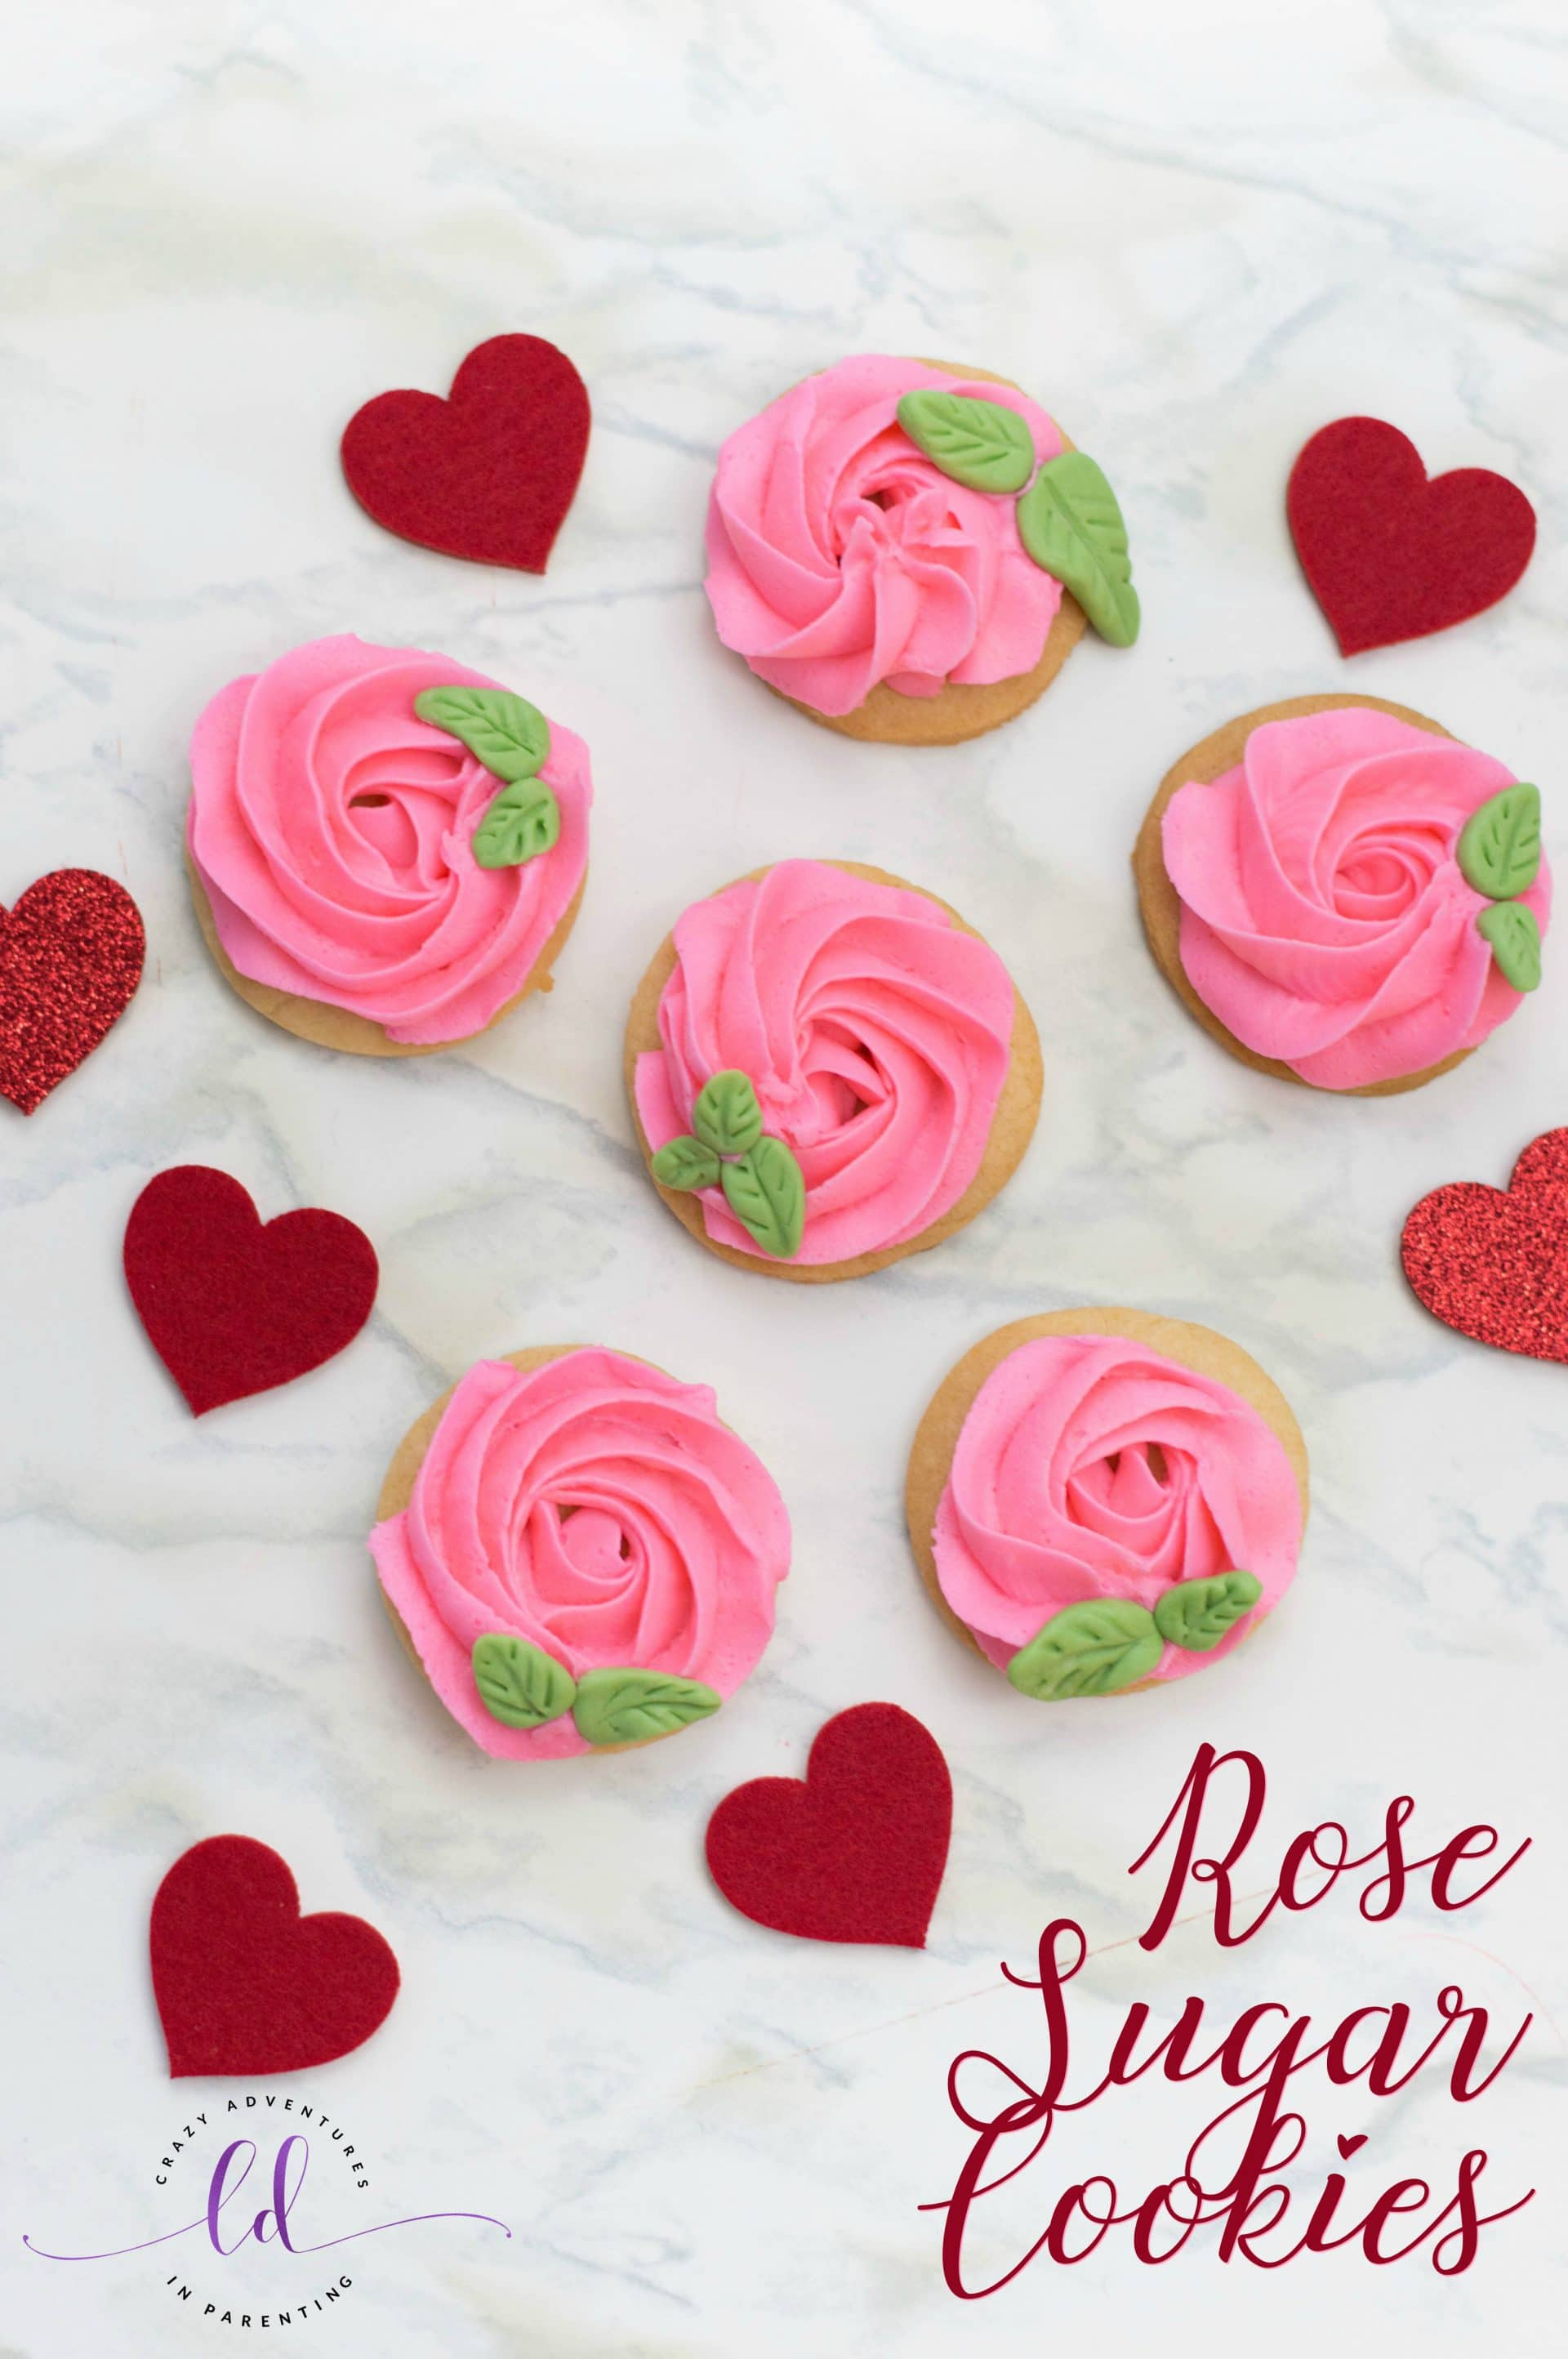 Rose Sugar Cookies